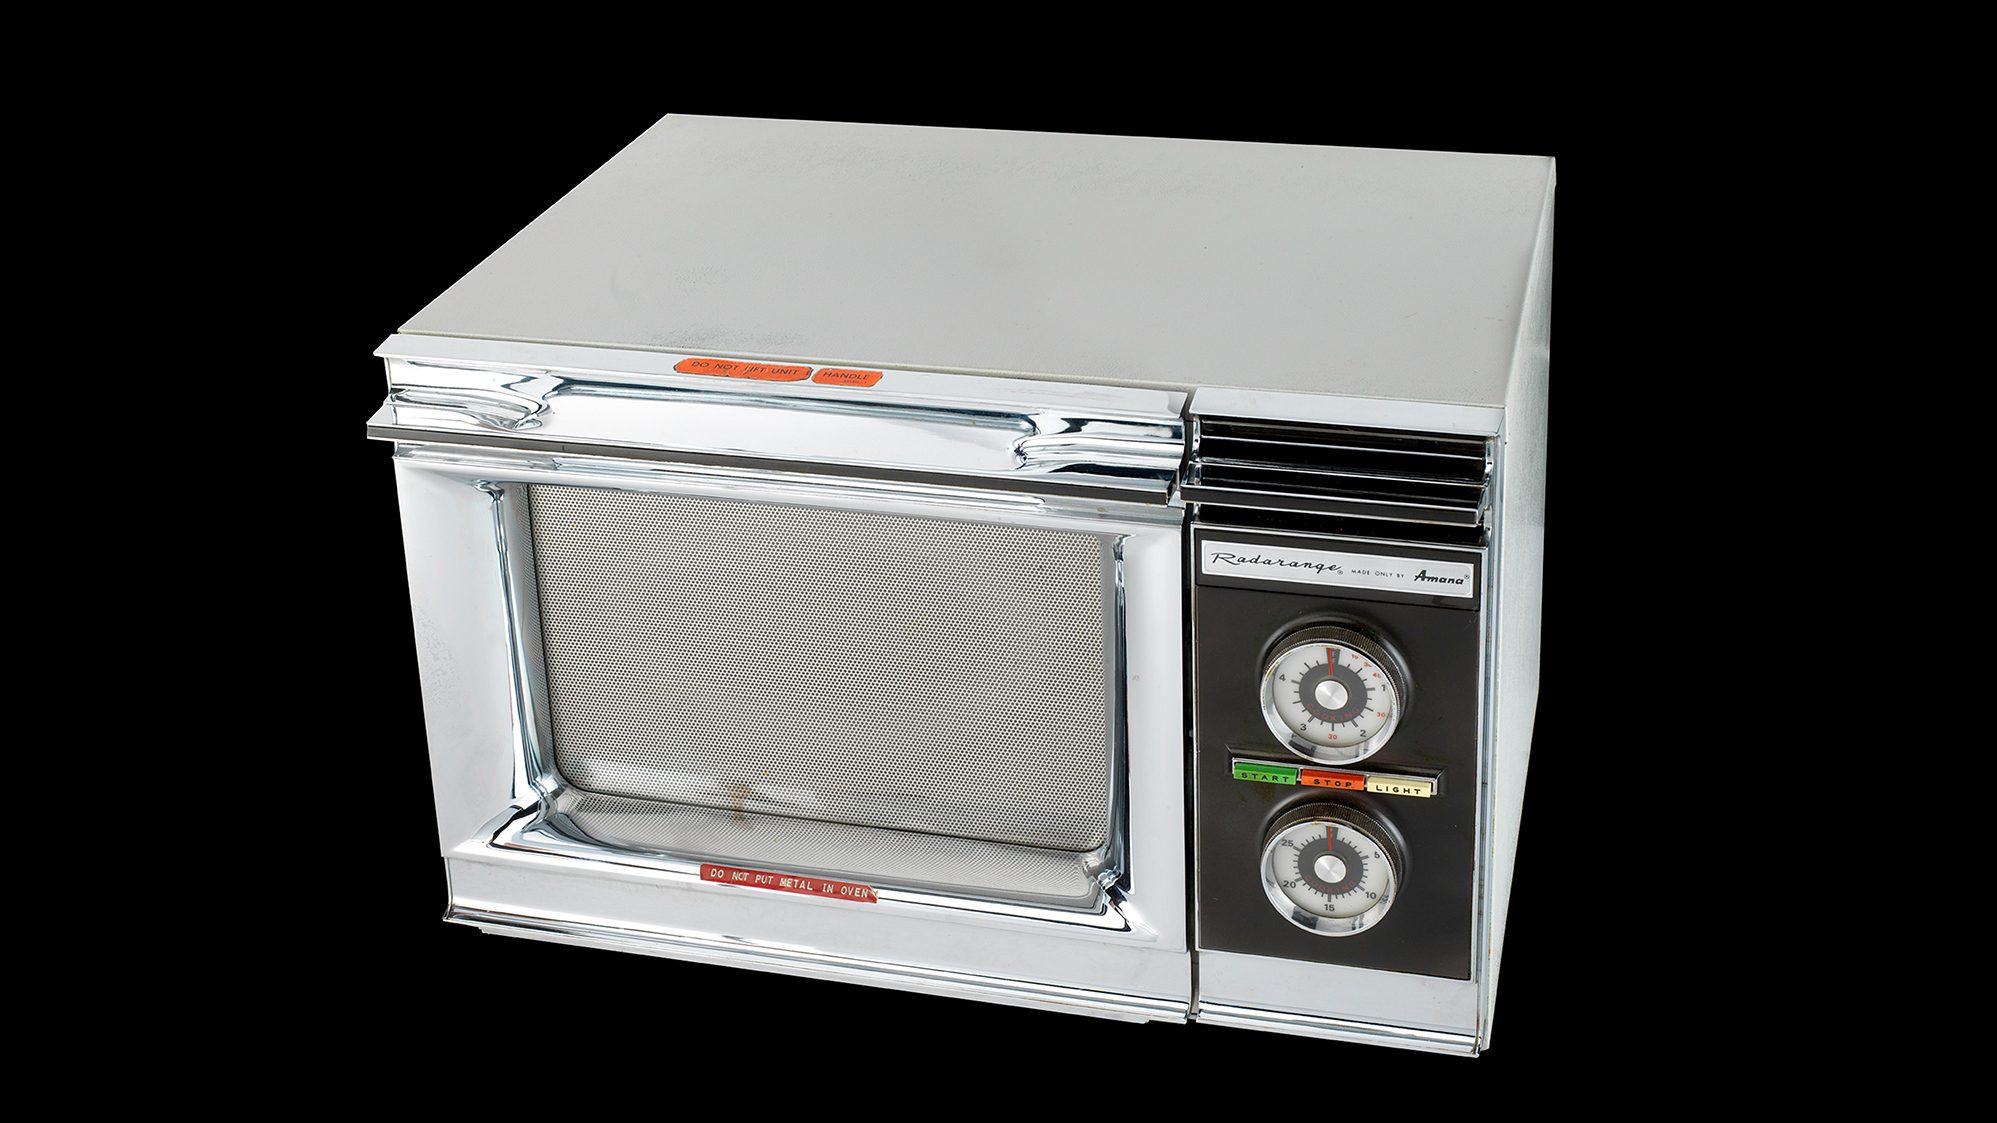 Why the microwave ovens were banned in the Soviet Union 75